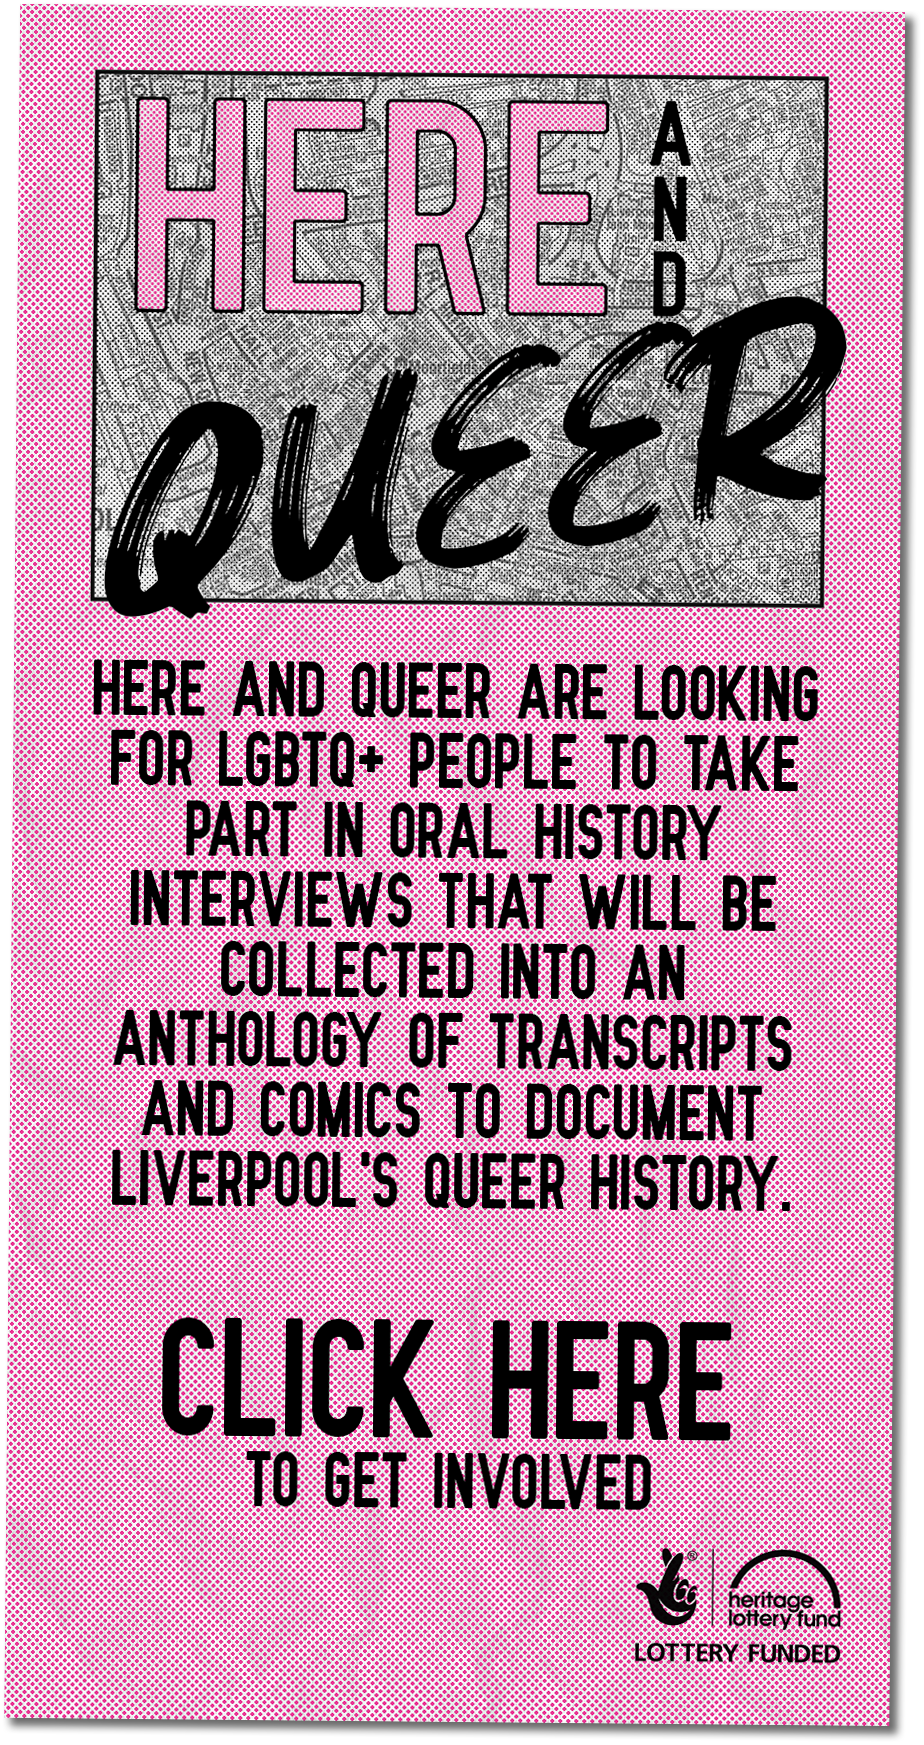 herequeer_clickthrough.png